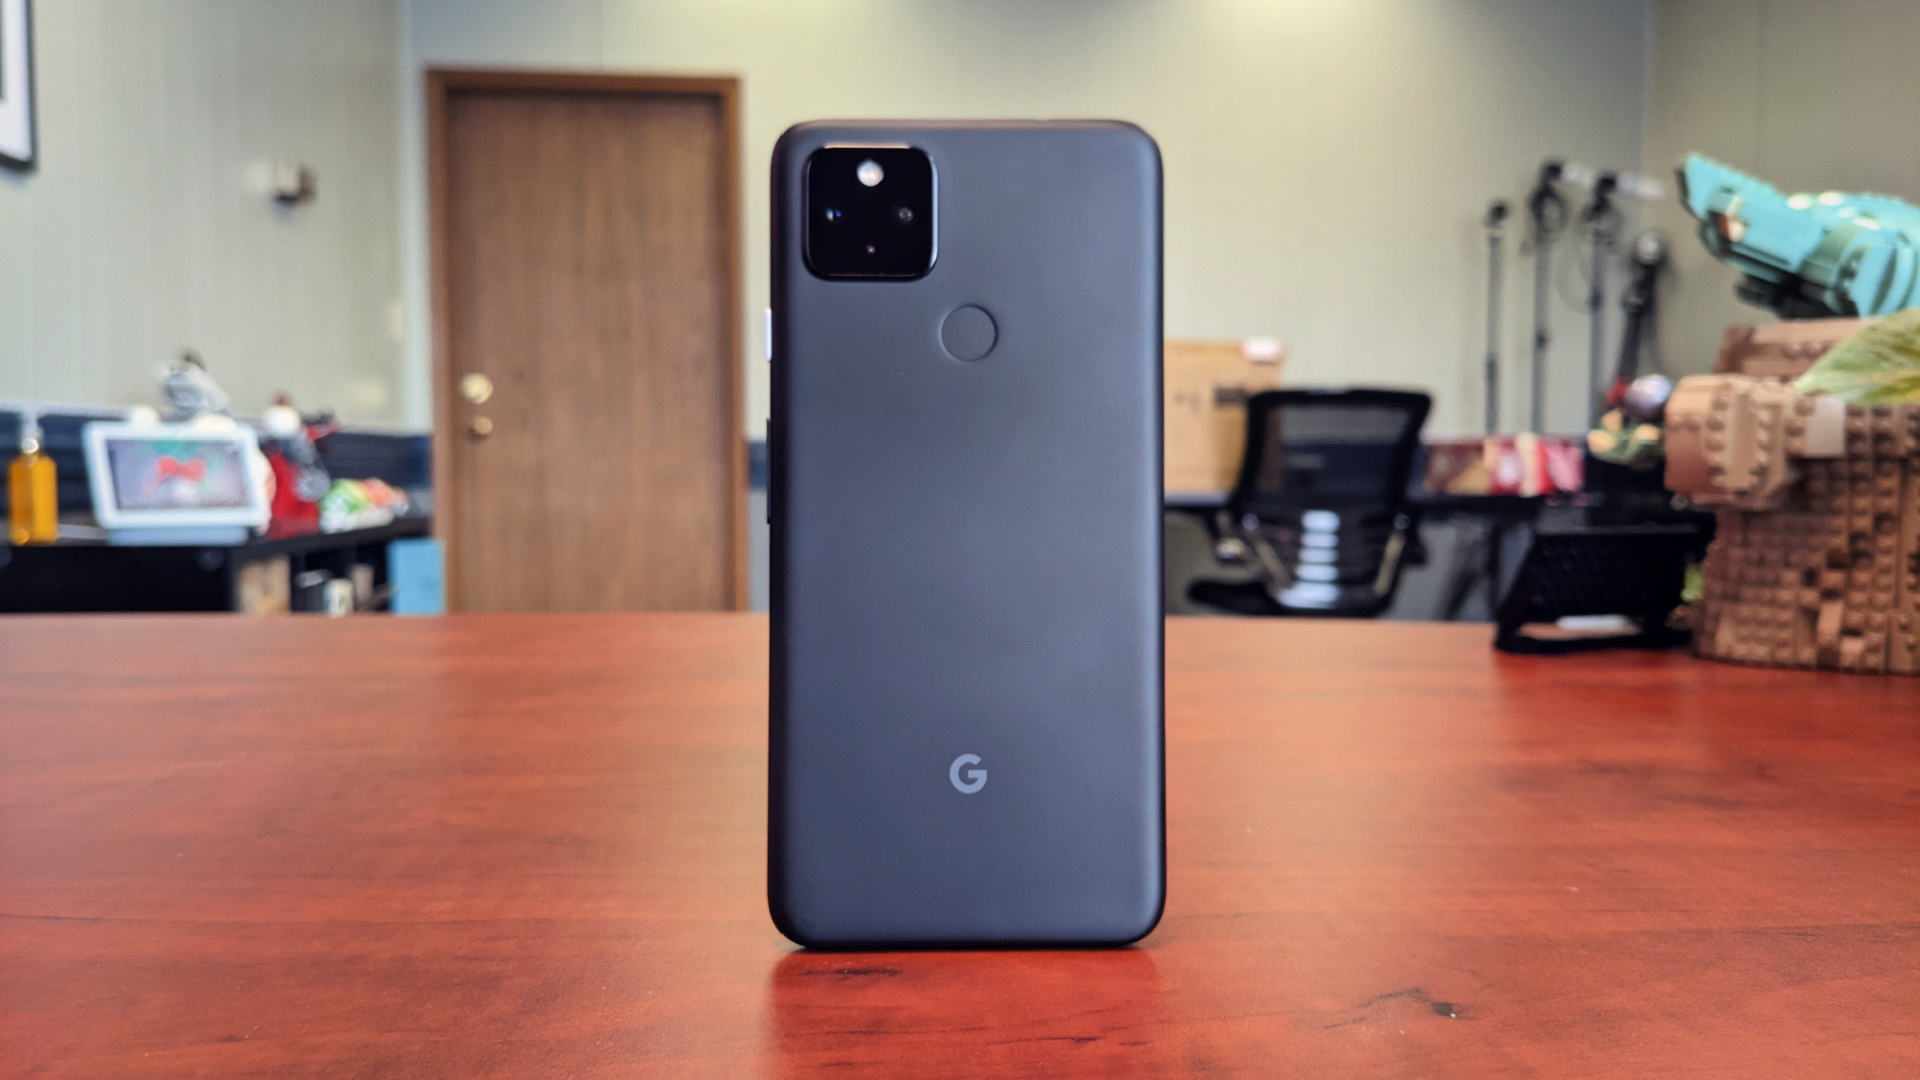 Four Months Later: Google Pixel 4a (5G) review